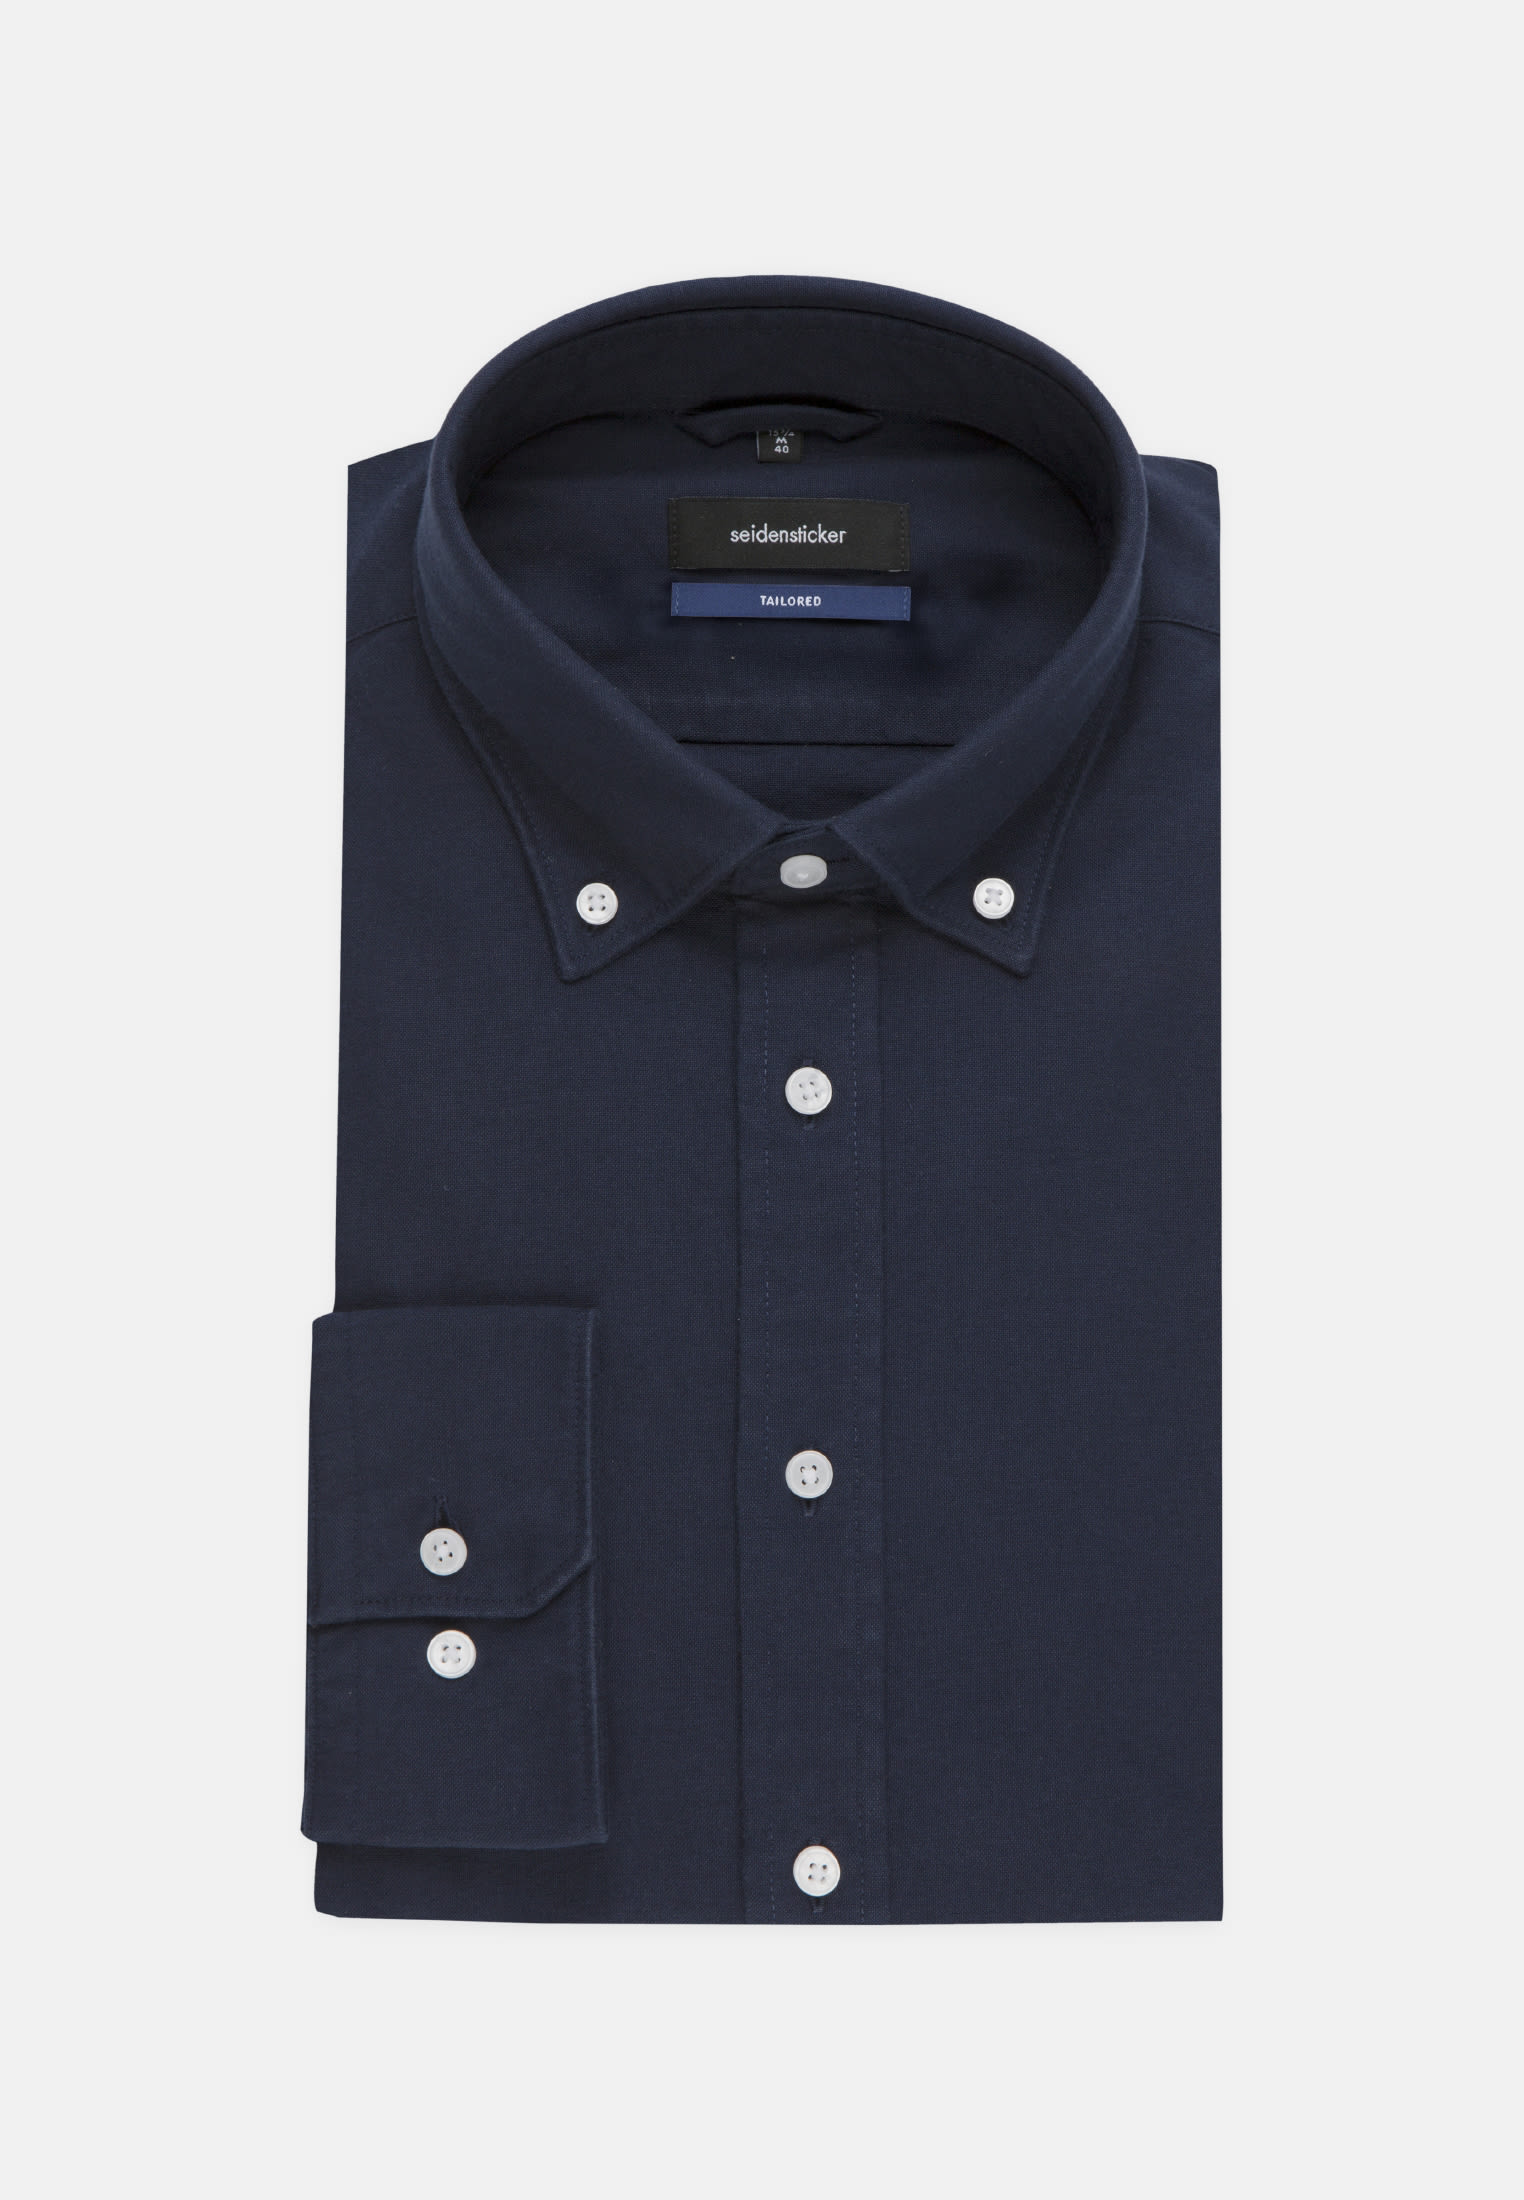 Bügelleichtes Oxford Business Hemd in Shaped mit Button Down Kragen